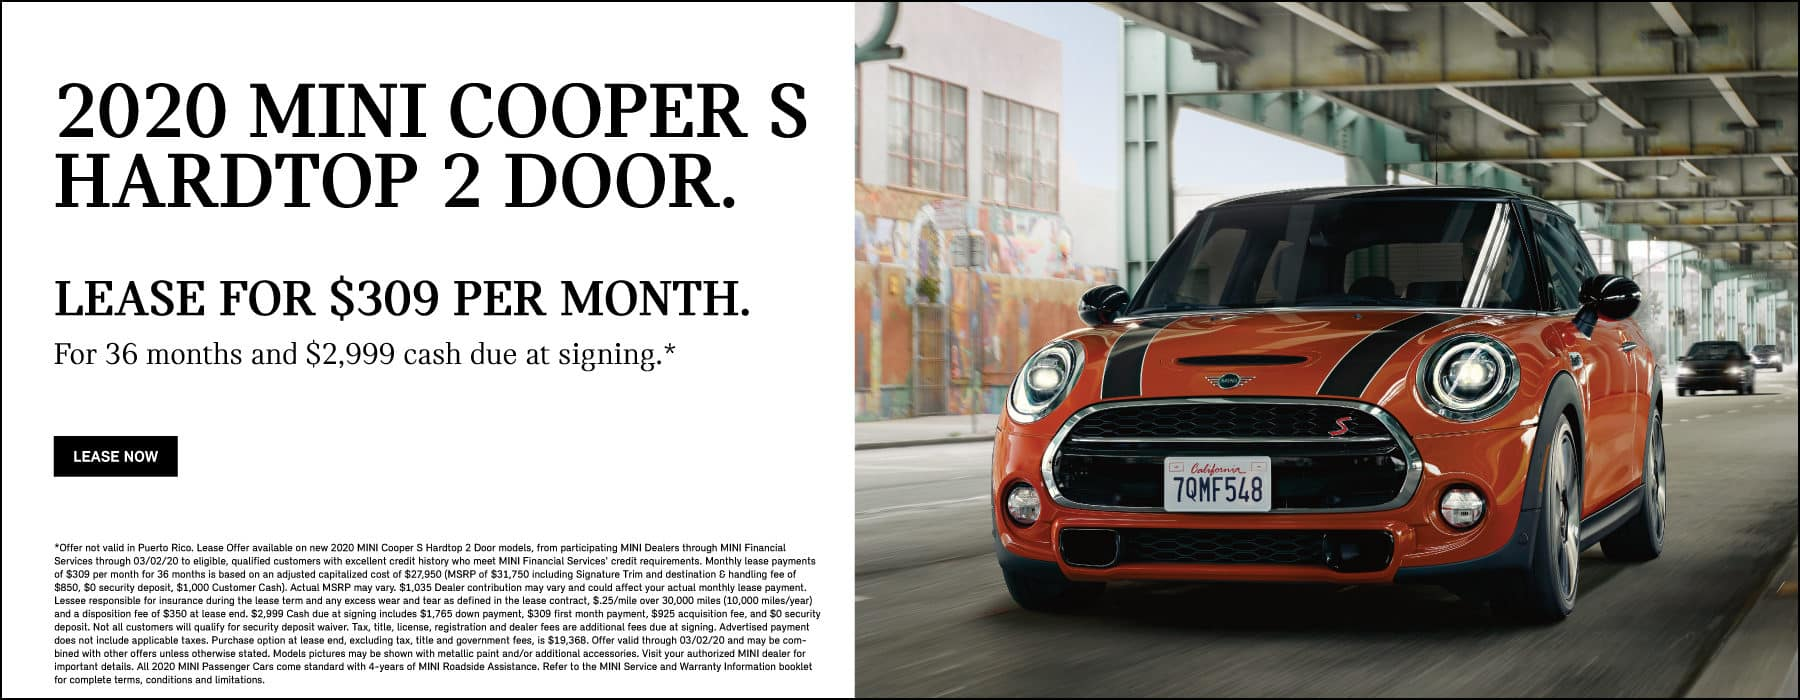 Lease a 2020 MINI Cooper S Hardtop 2 Door for $309/mo.